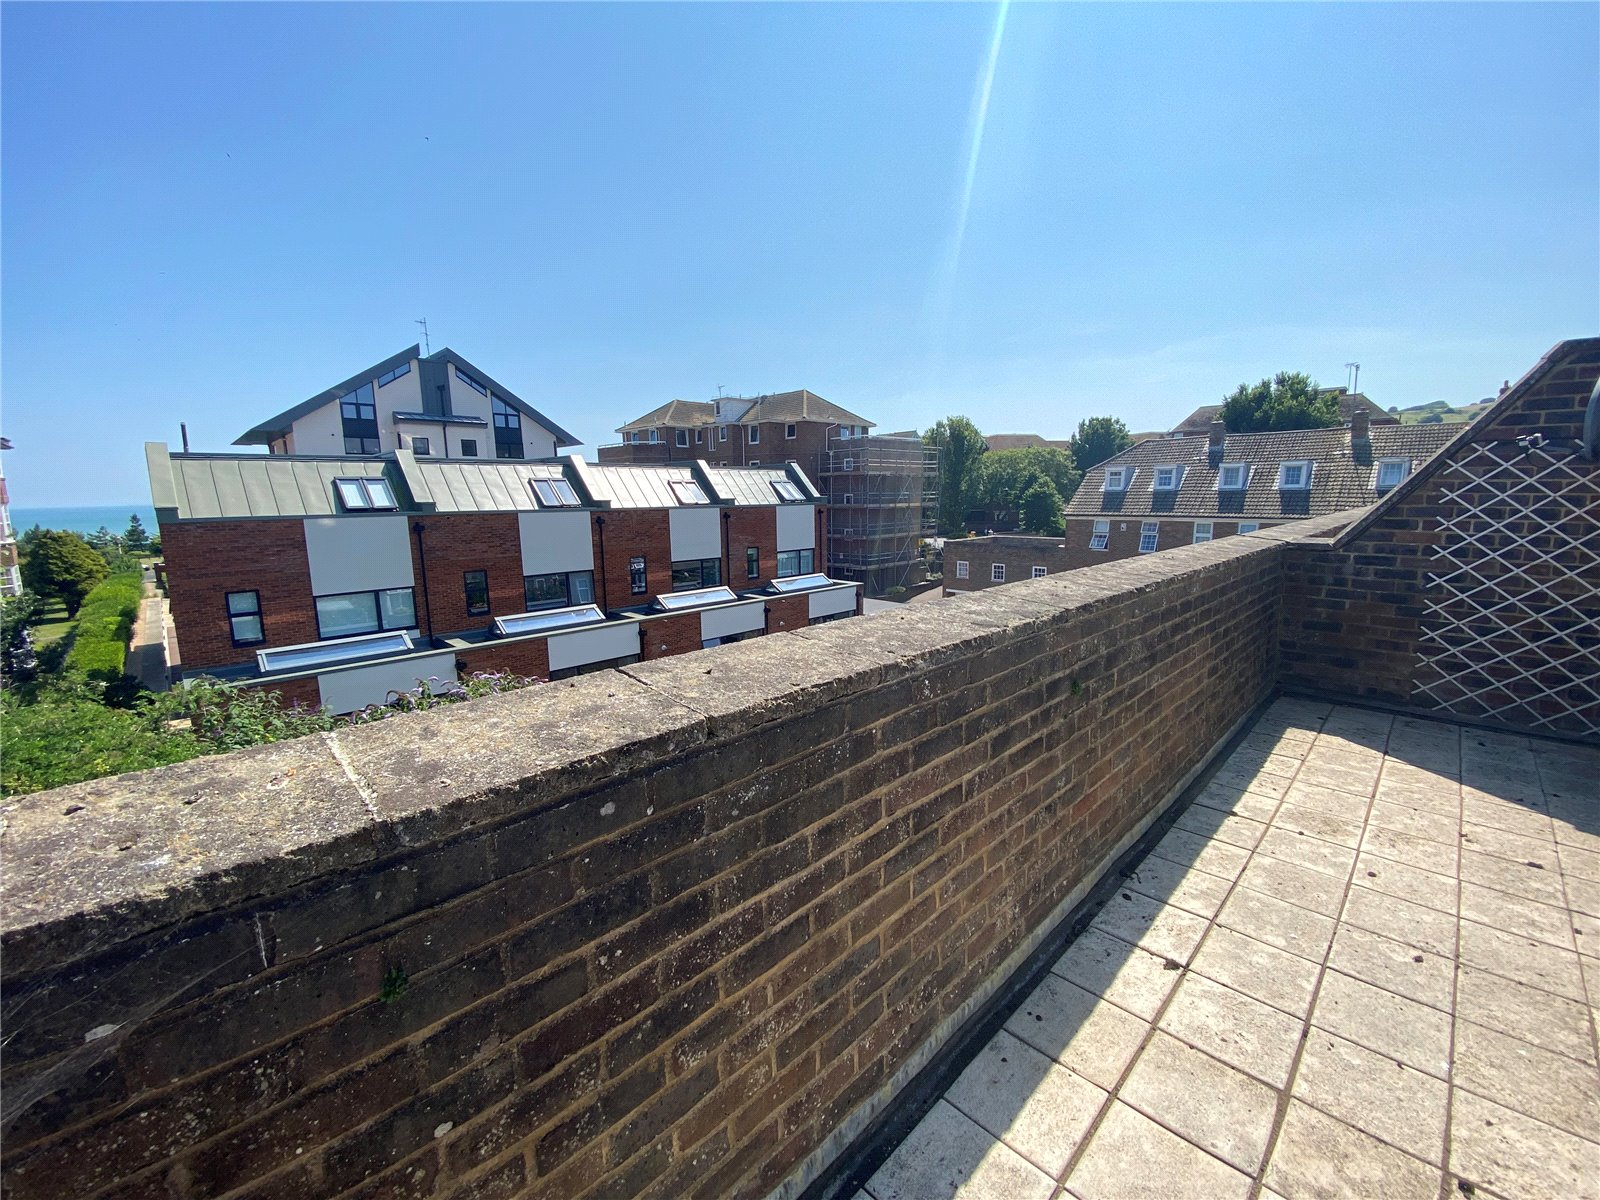 Chesterfield Gardens, Meads